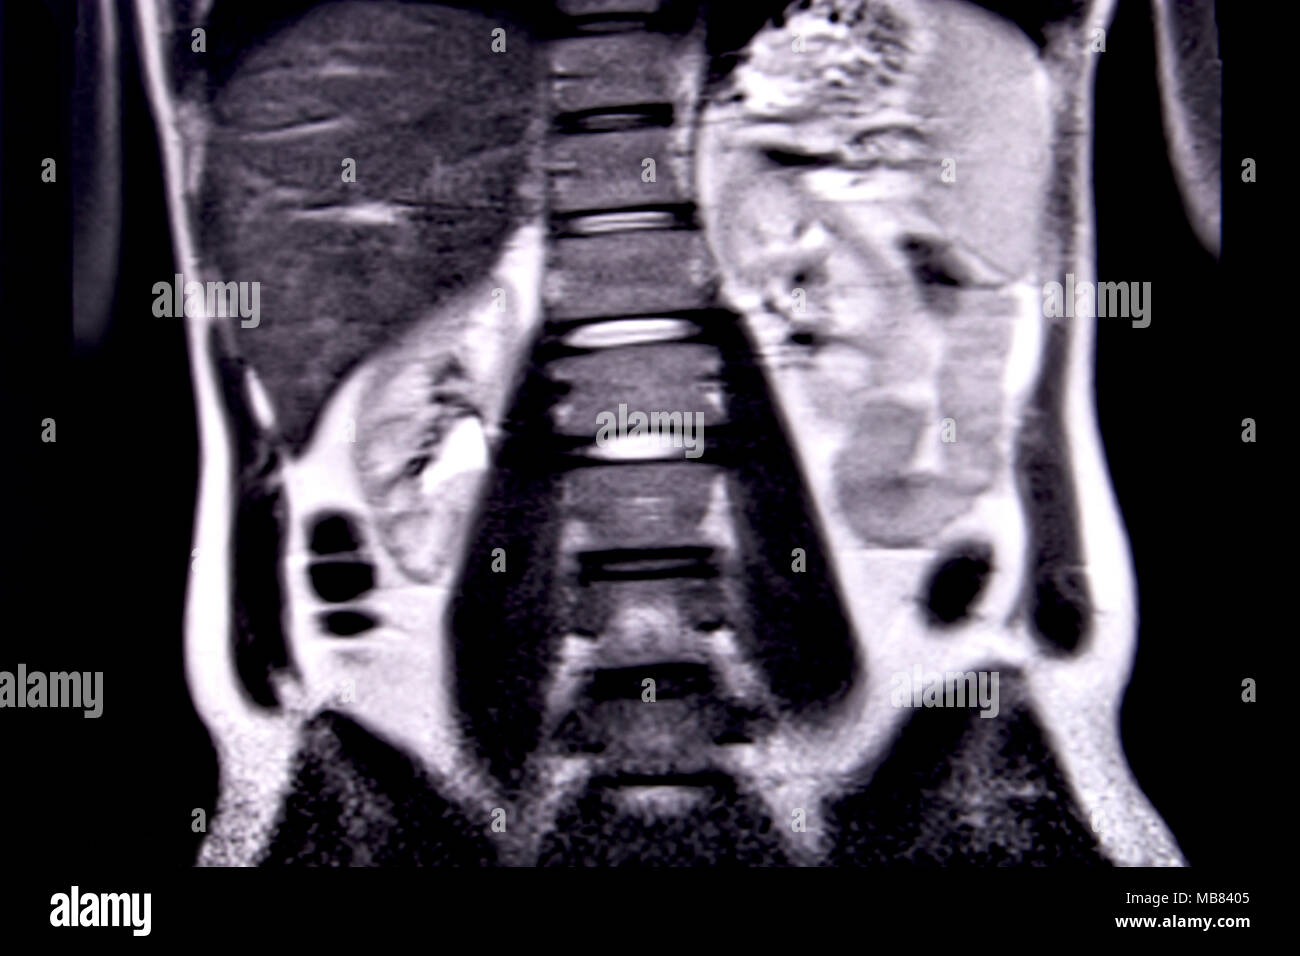 Mri Scan Cancer Stock Photos & Mri Scan Cancer Stock Images - Alamy